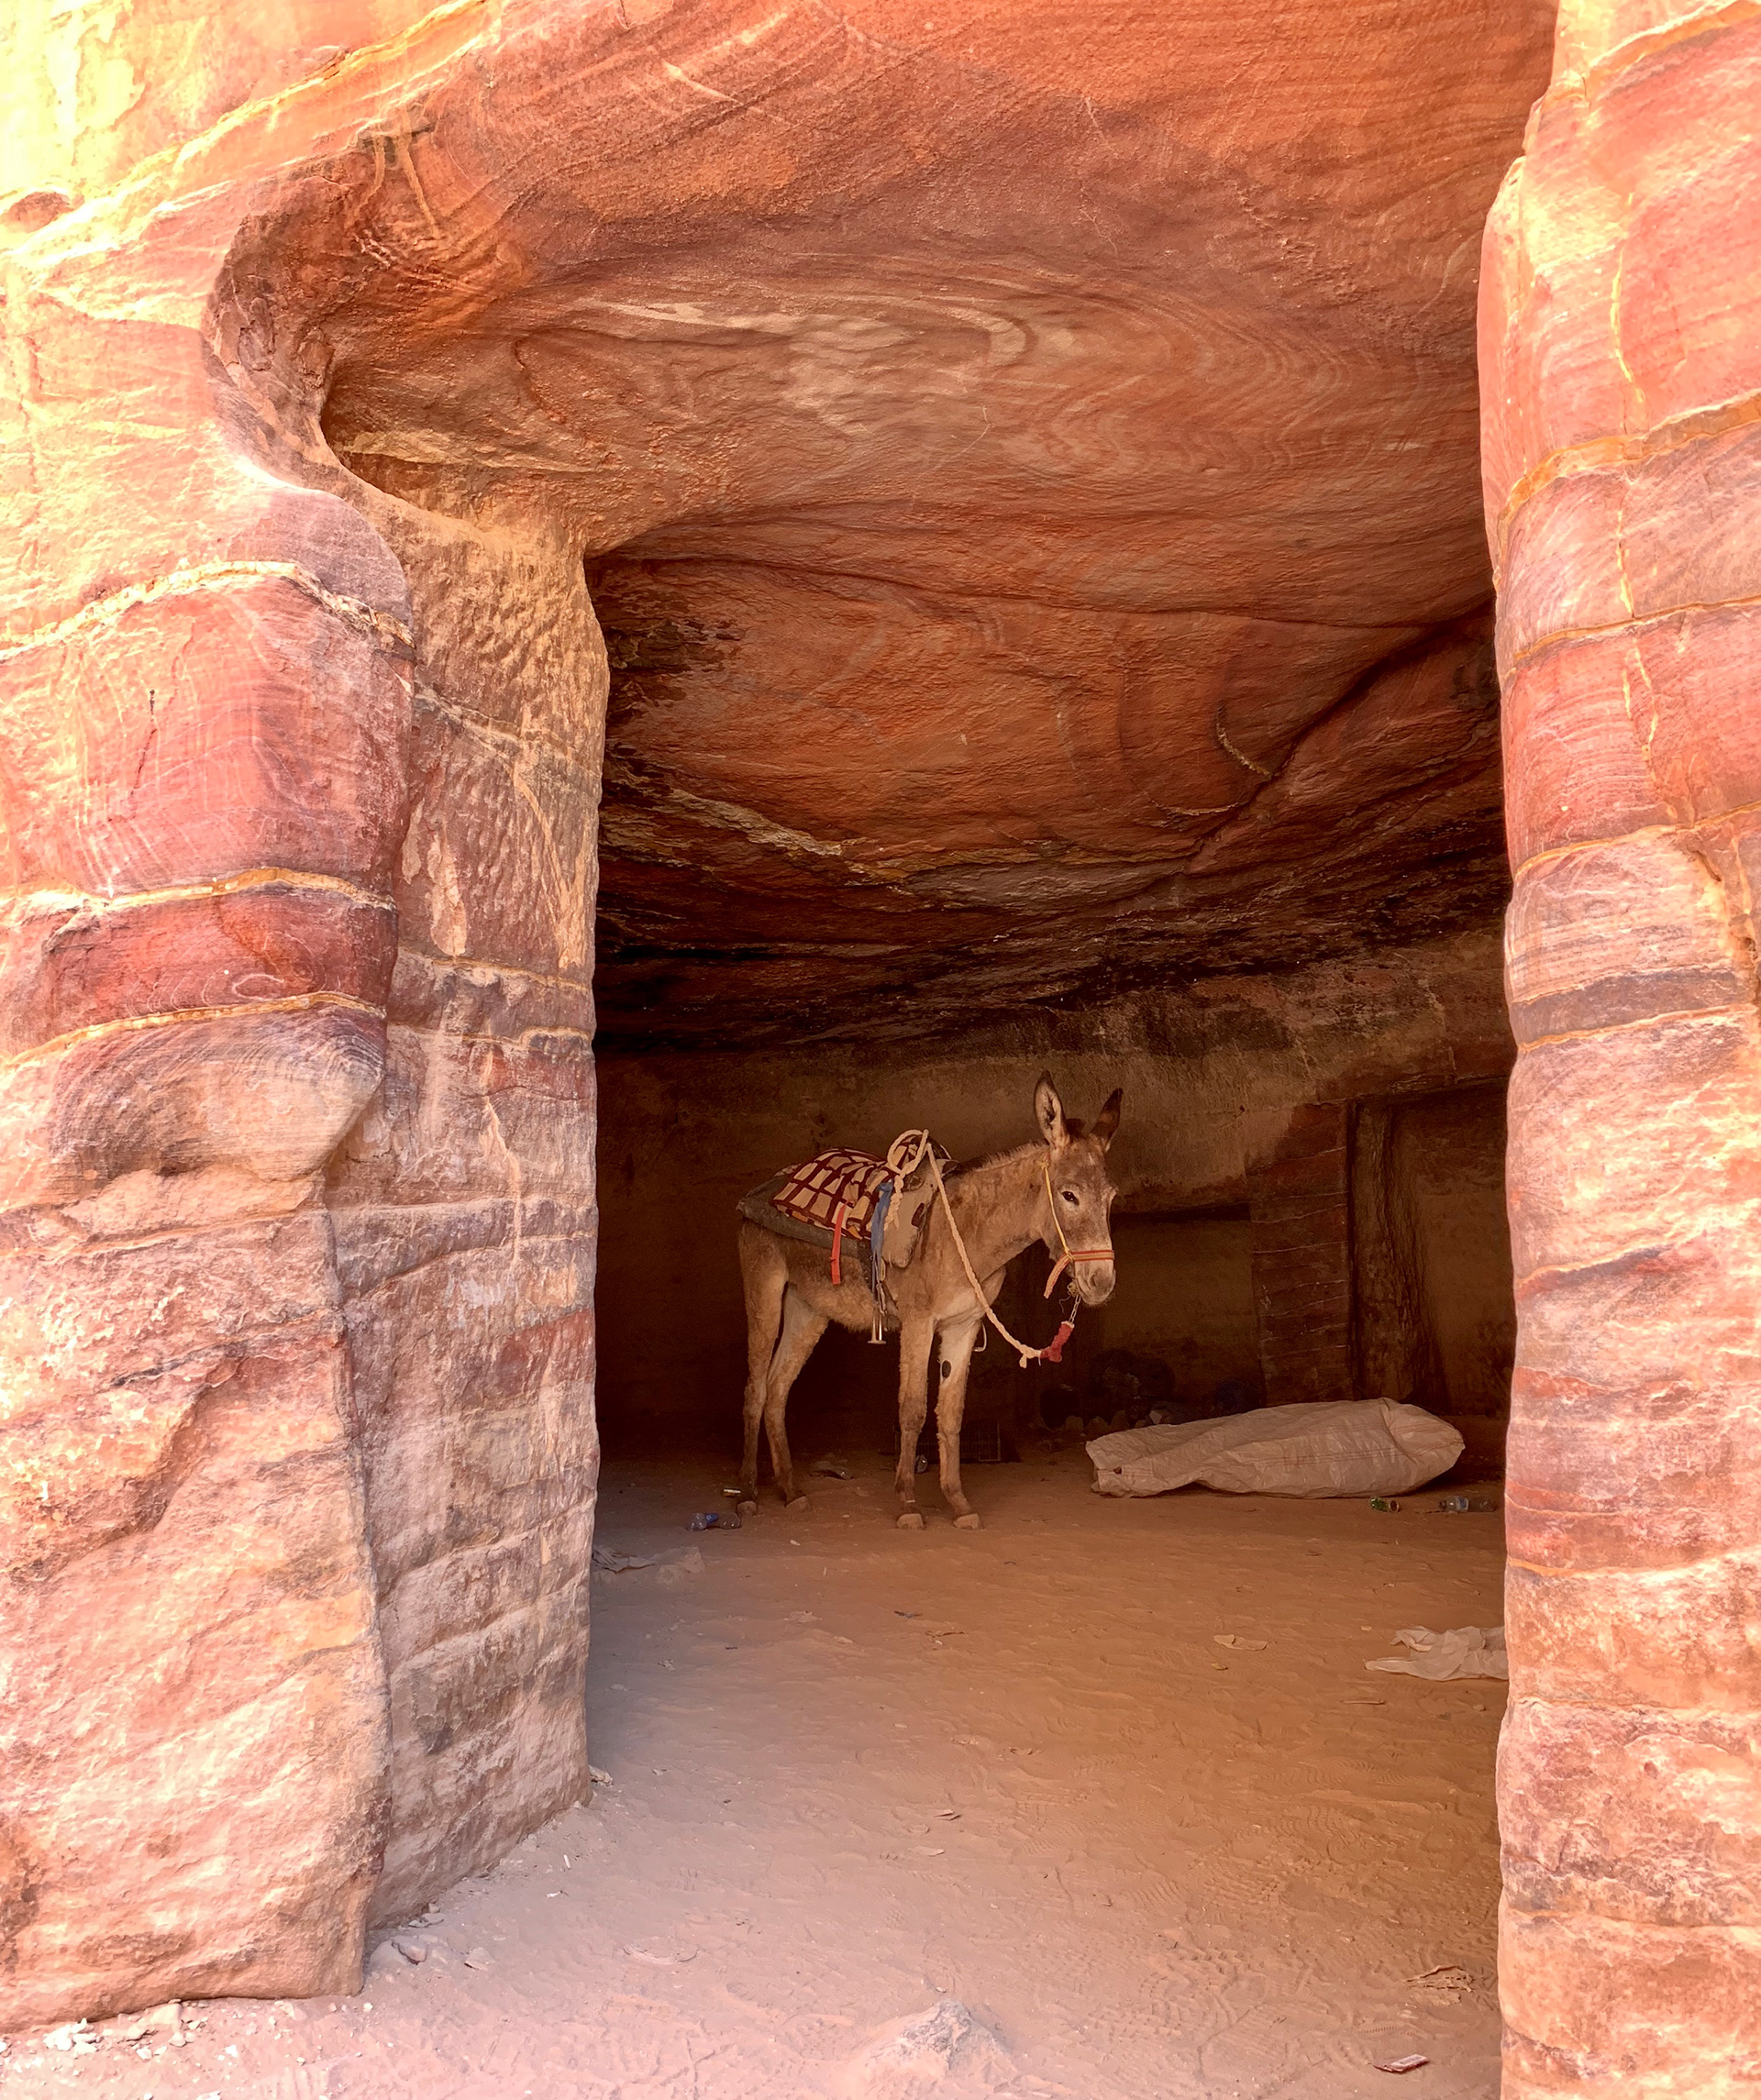 Rides are provided on donkeys to travel up and down the terrain | Petra, Jordan | Sandeep and Tania Khosla| STIRworld